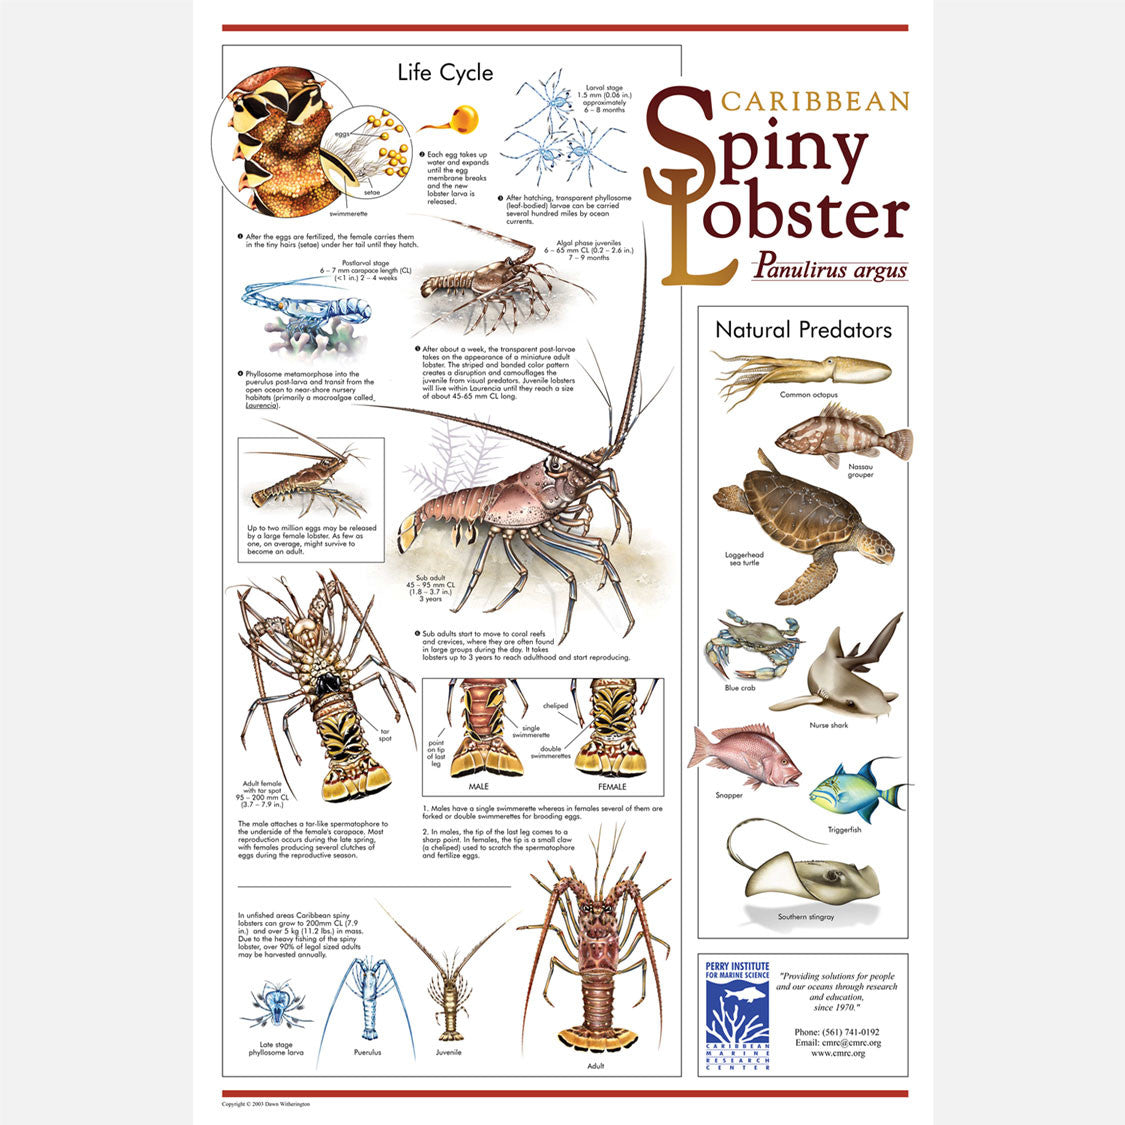 This beautiful poster provides information about the Caribbean Spiny Lobster, Panulirus argus.